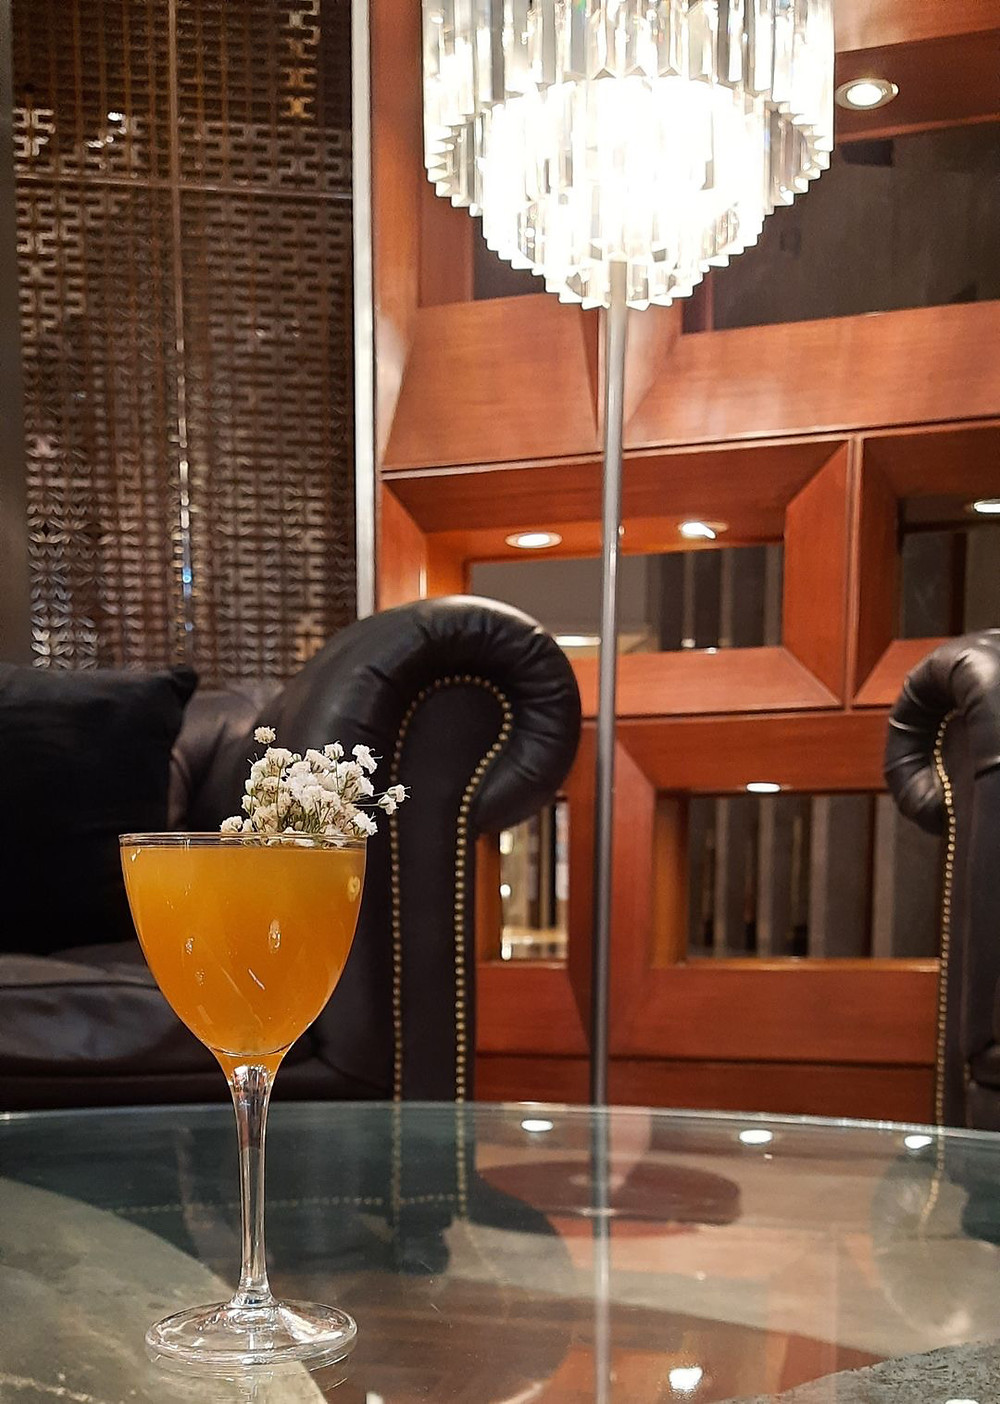 Cocktail Recipe By Piyush gouchwal